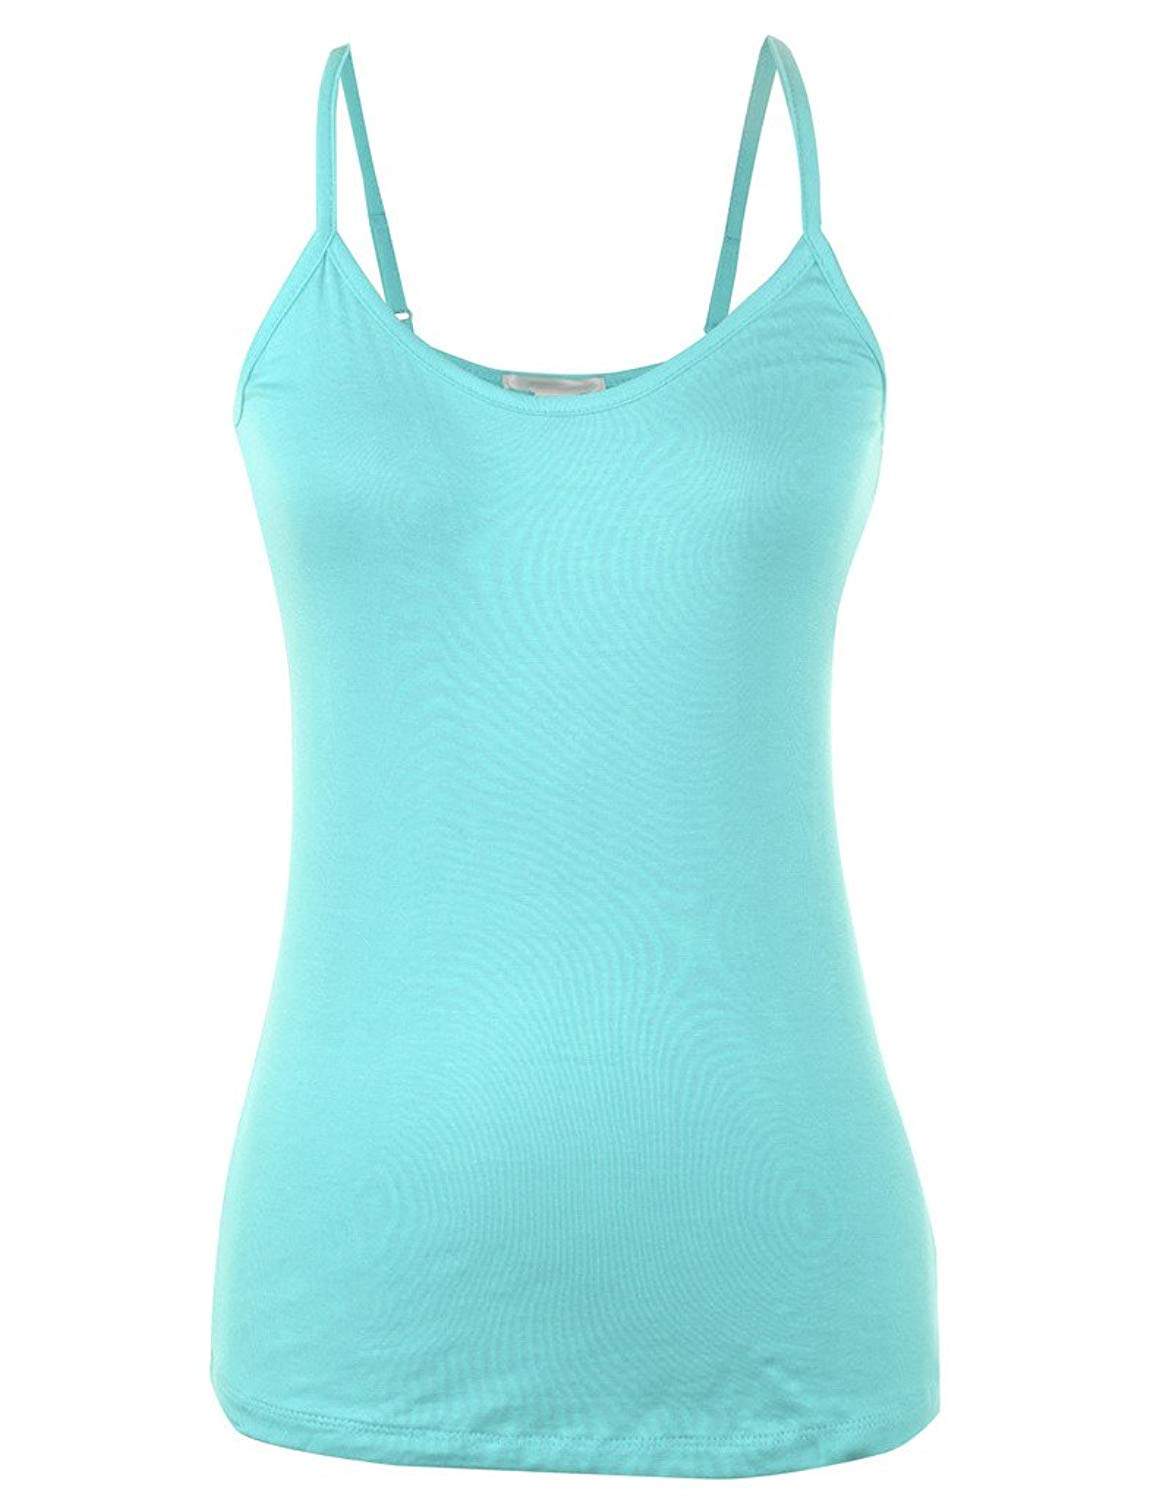 25cd250c30ab44 Get Quotations · Basic Solid Plain Base Layering Spaghetti Strap Rayon  Camisole